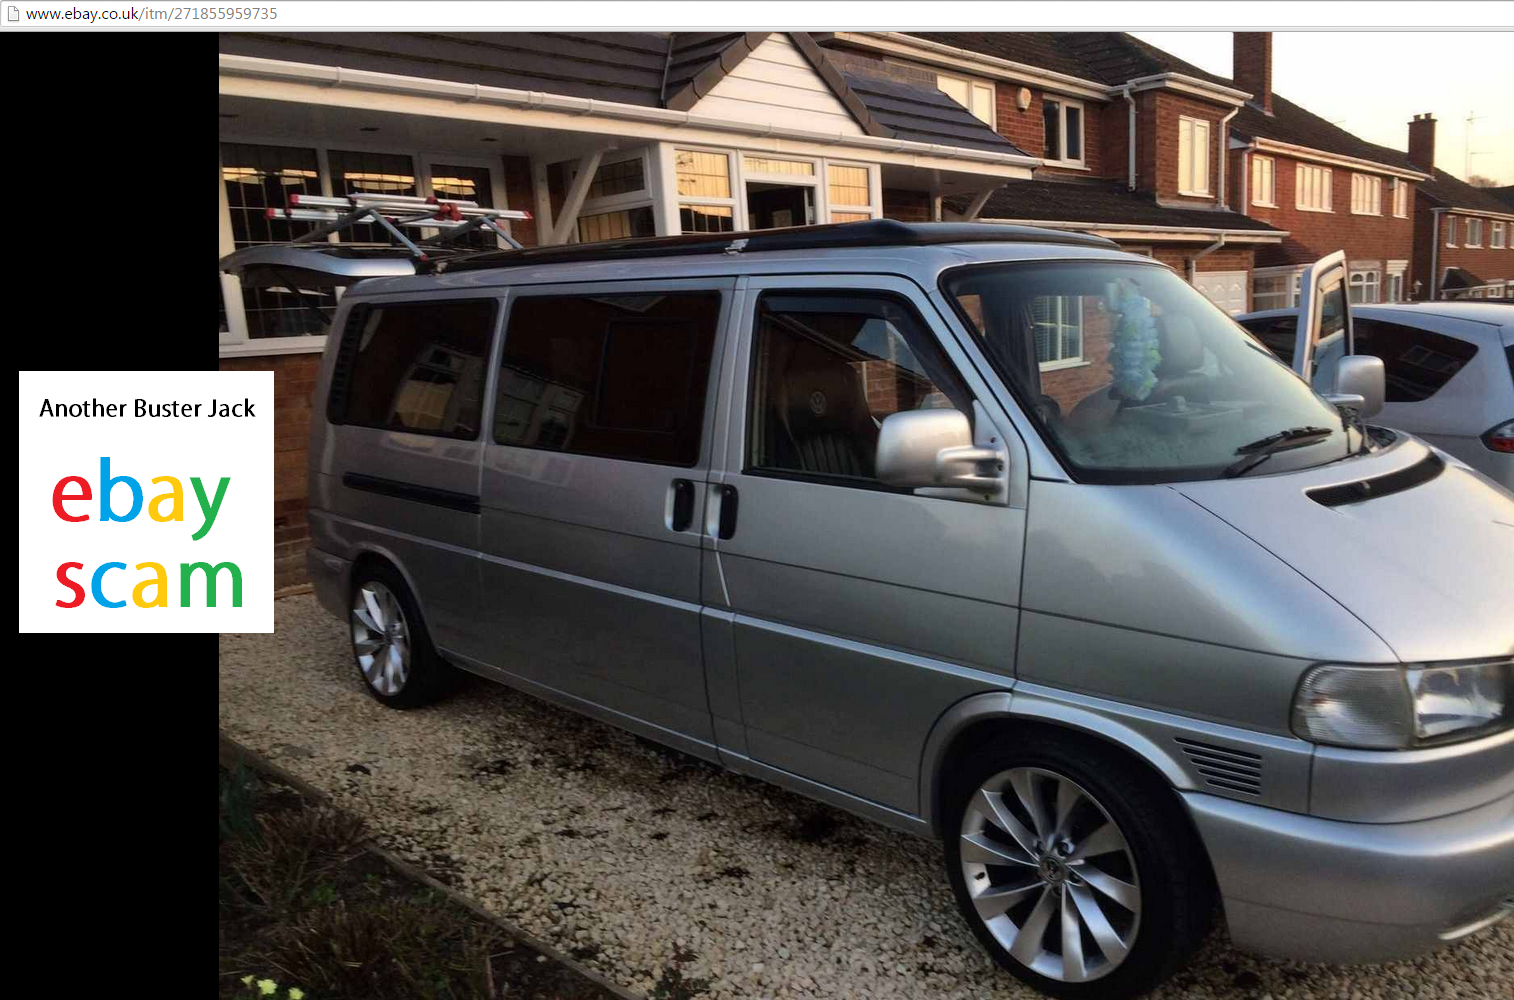 EBAY SCAM : 2002 VW T4 2.5 TDI CAMPERVAN | SK52TCV - Fraud